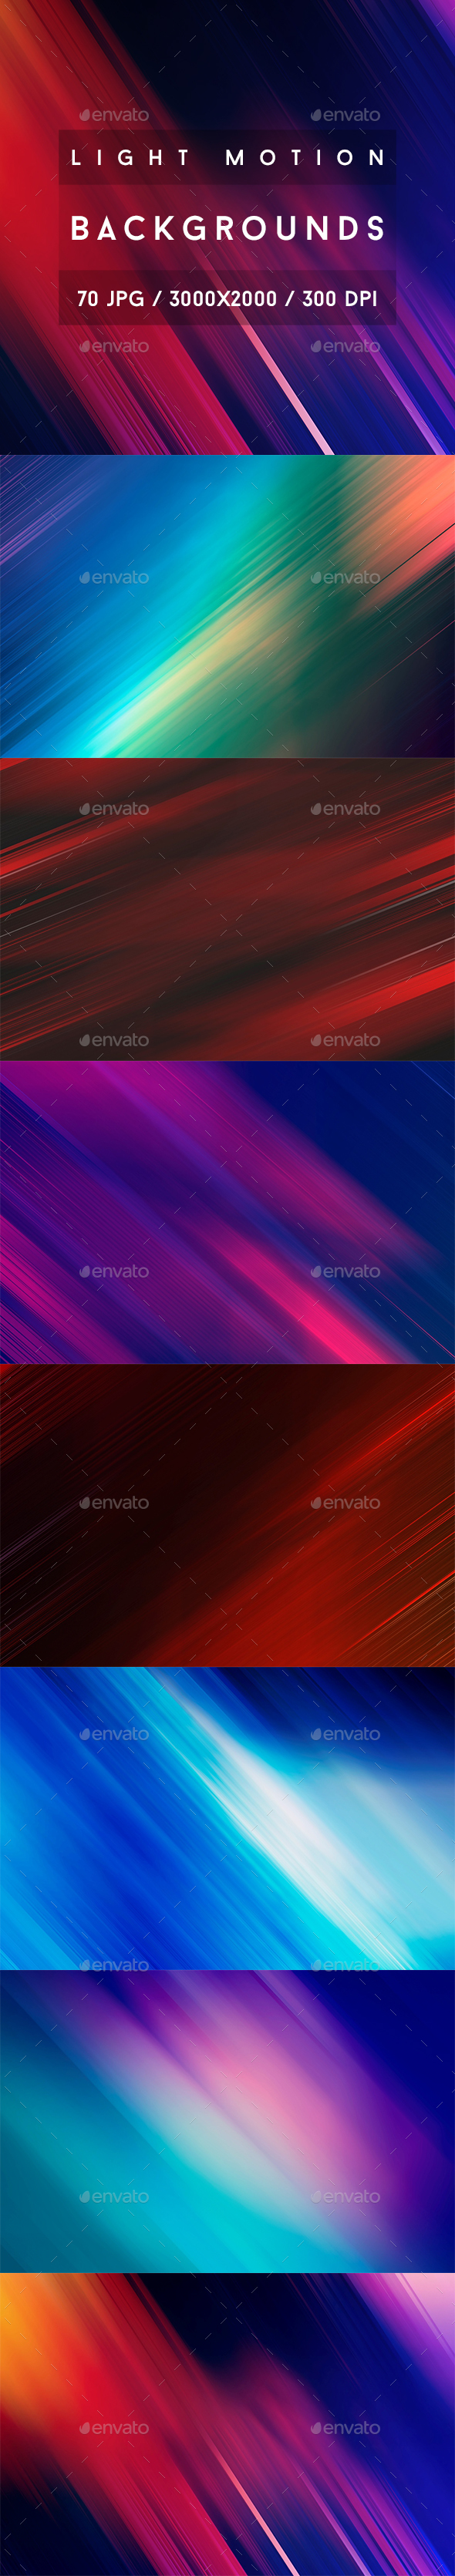 70 Light Motion Backgrounds - Abstract Backgrounds